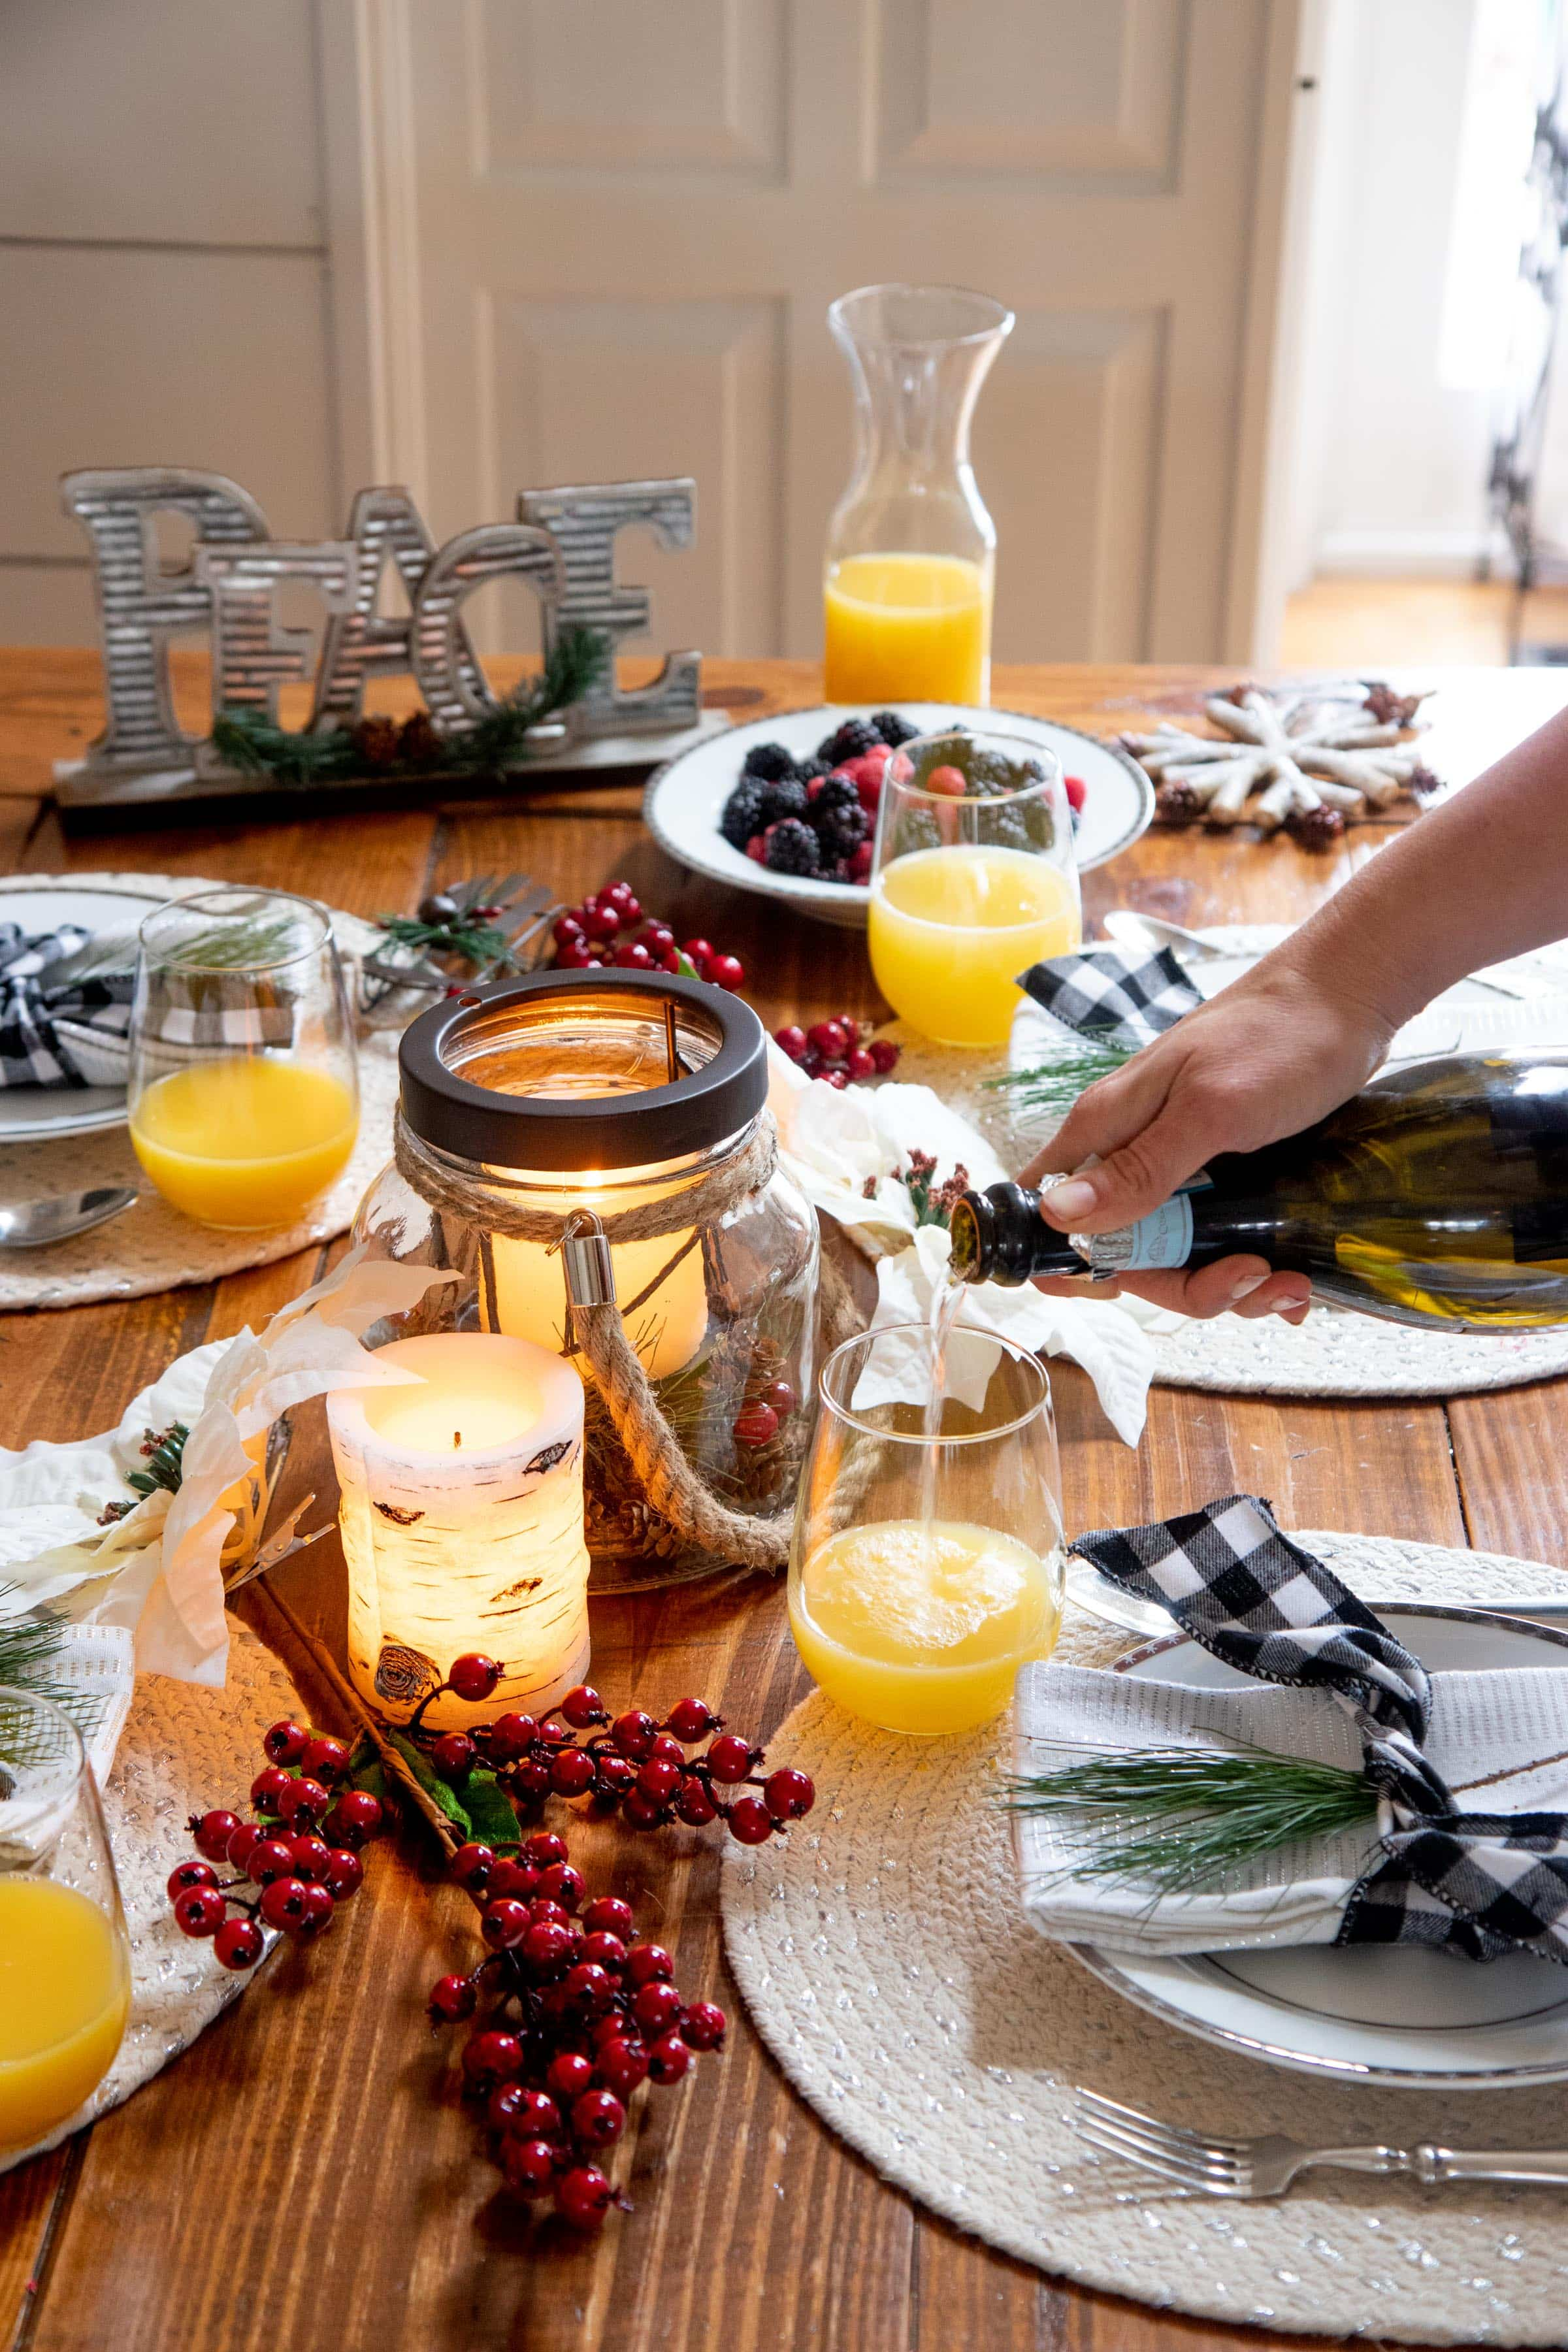 Hand pouring mimosas into glasses on a table set for the holidays.